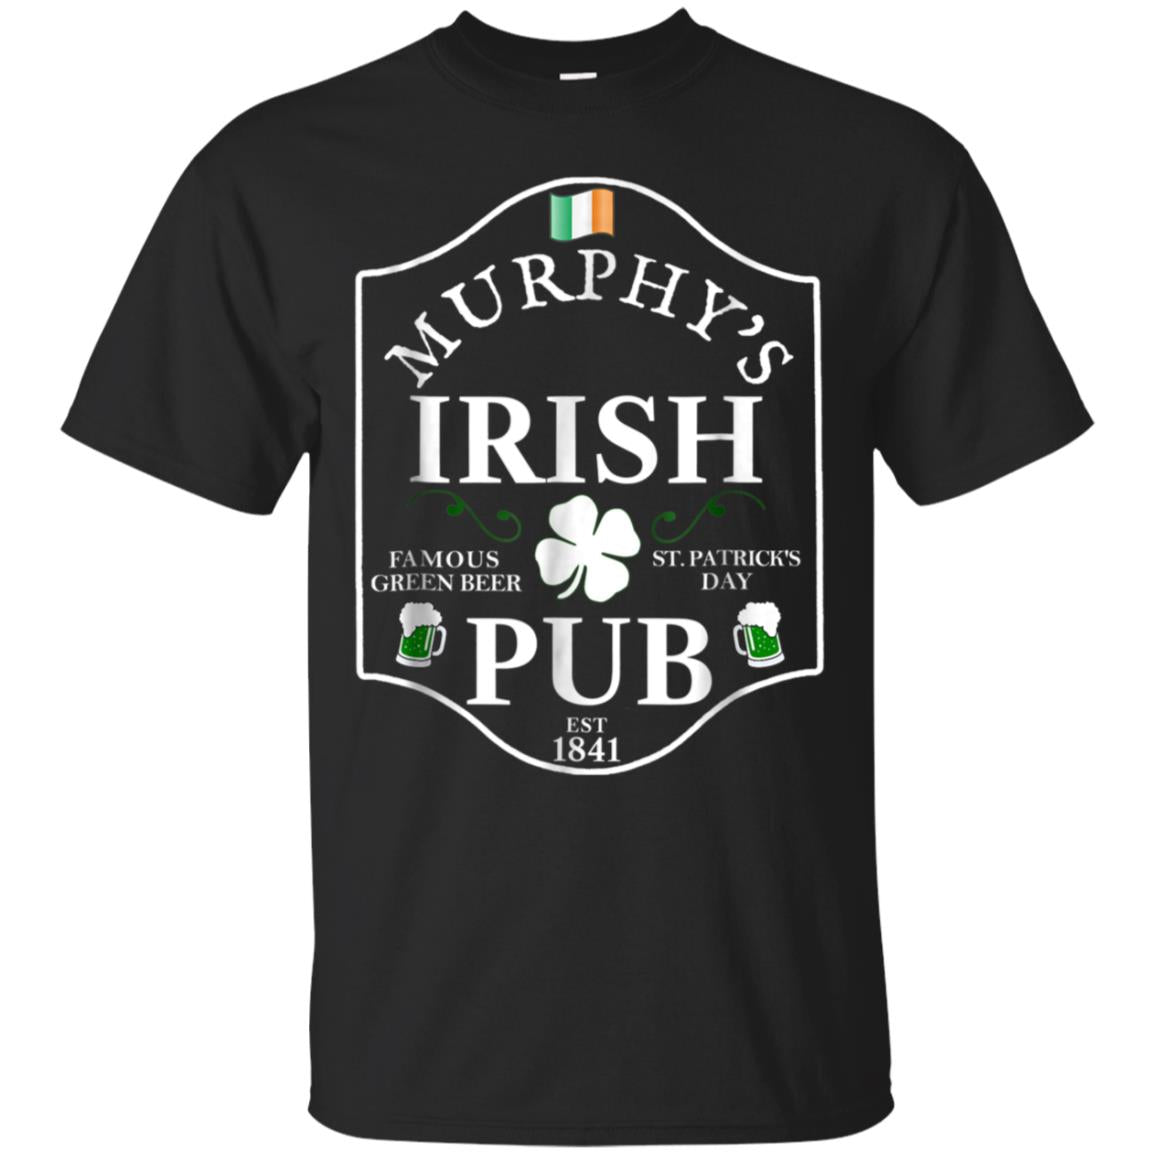 MURPHY'S IRISH PUB St. Patrick's Day Personalized T Shirt 99promocode